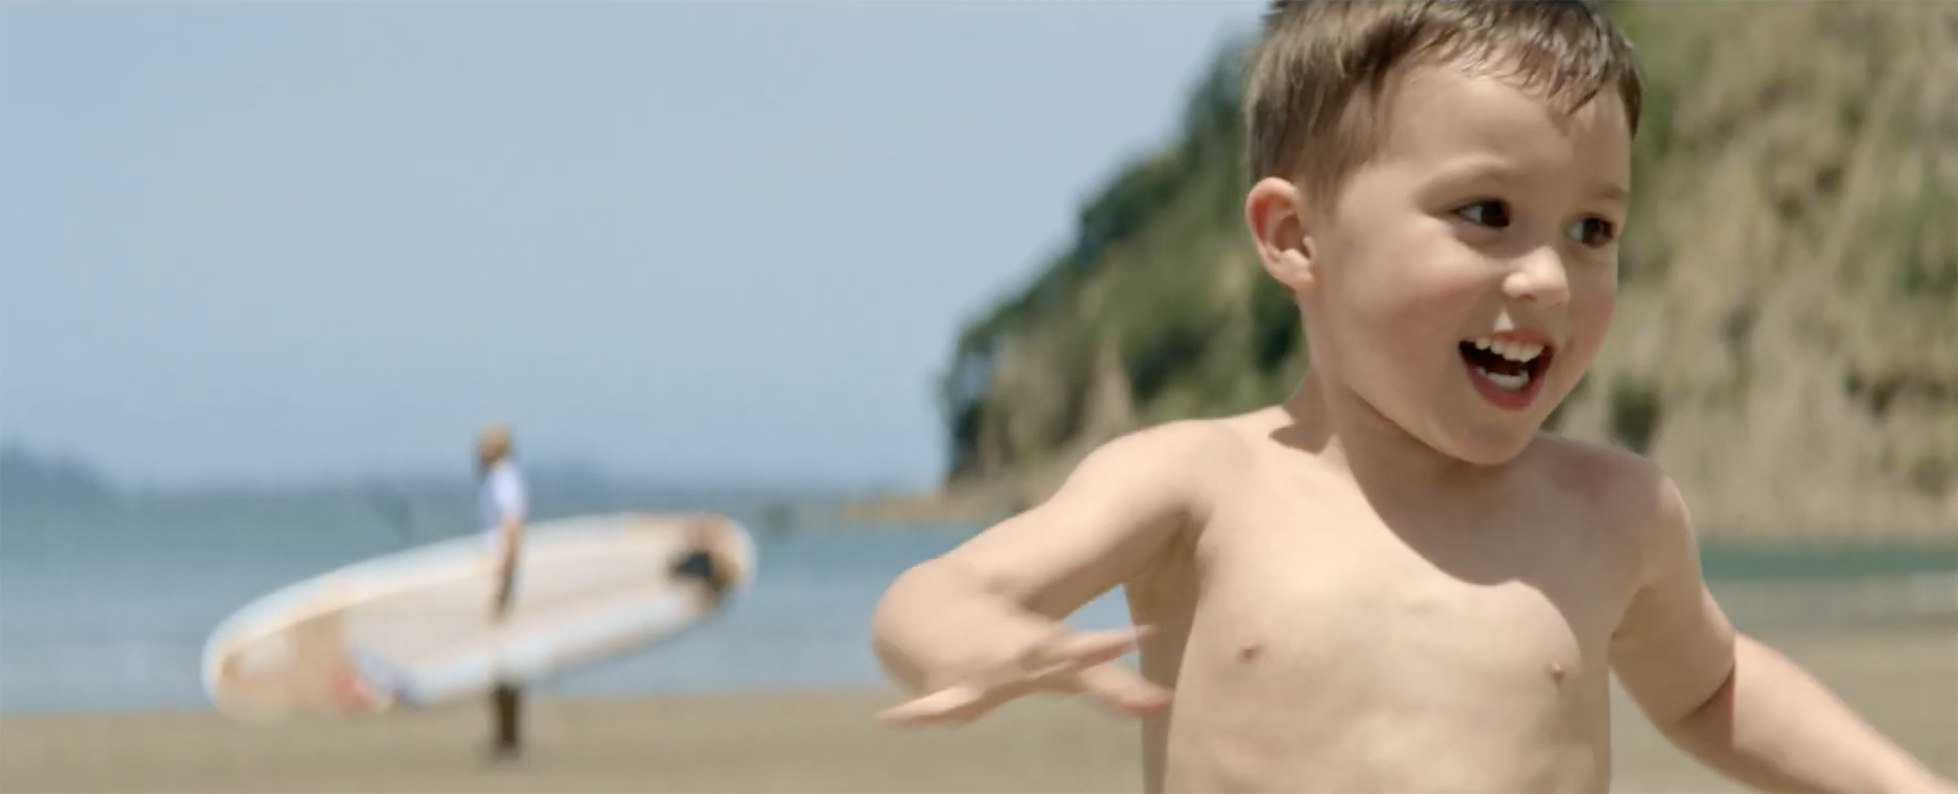 Seen+Noted: Sky encourages Kiwis to let it all hang out in new 'Summer of Sport' campaign